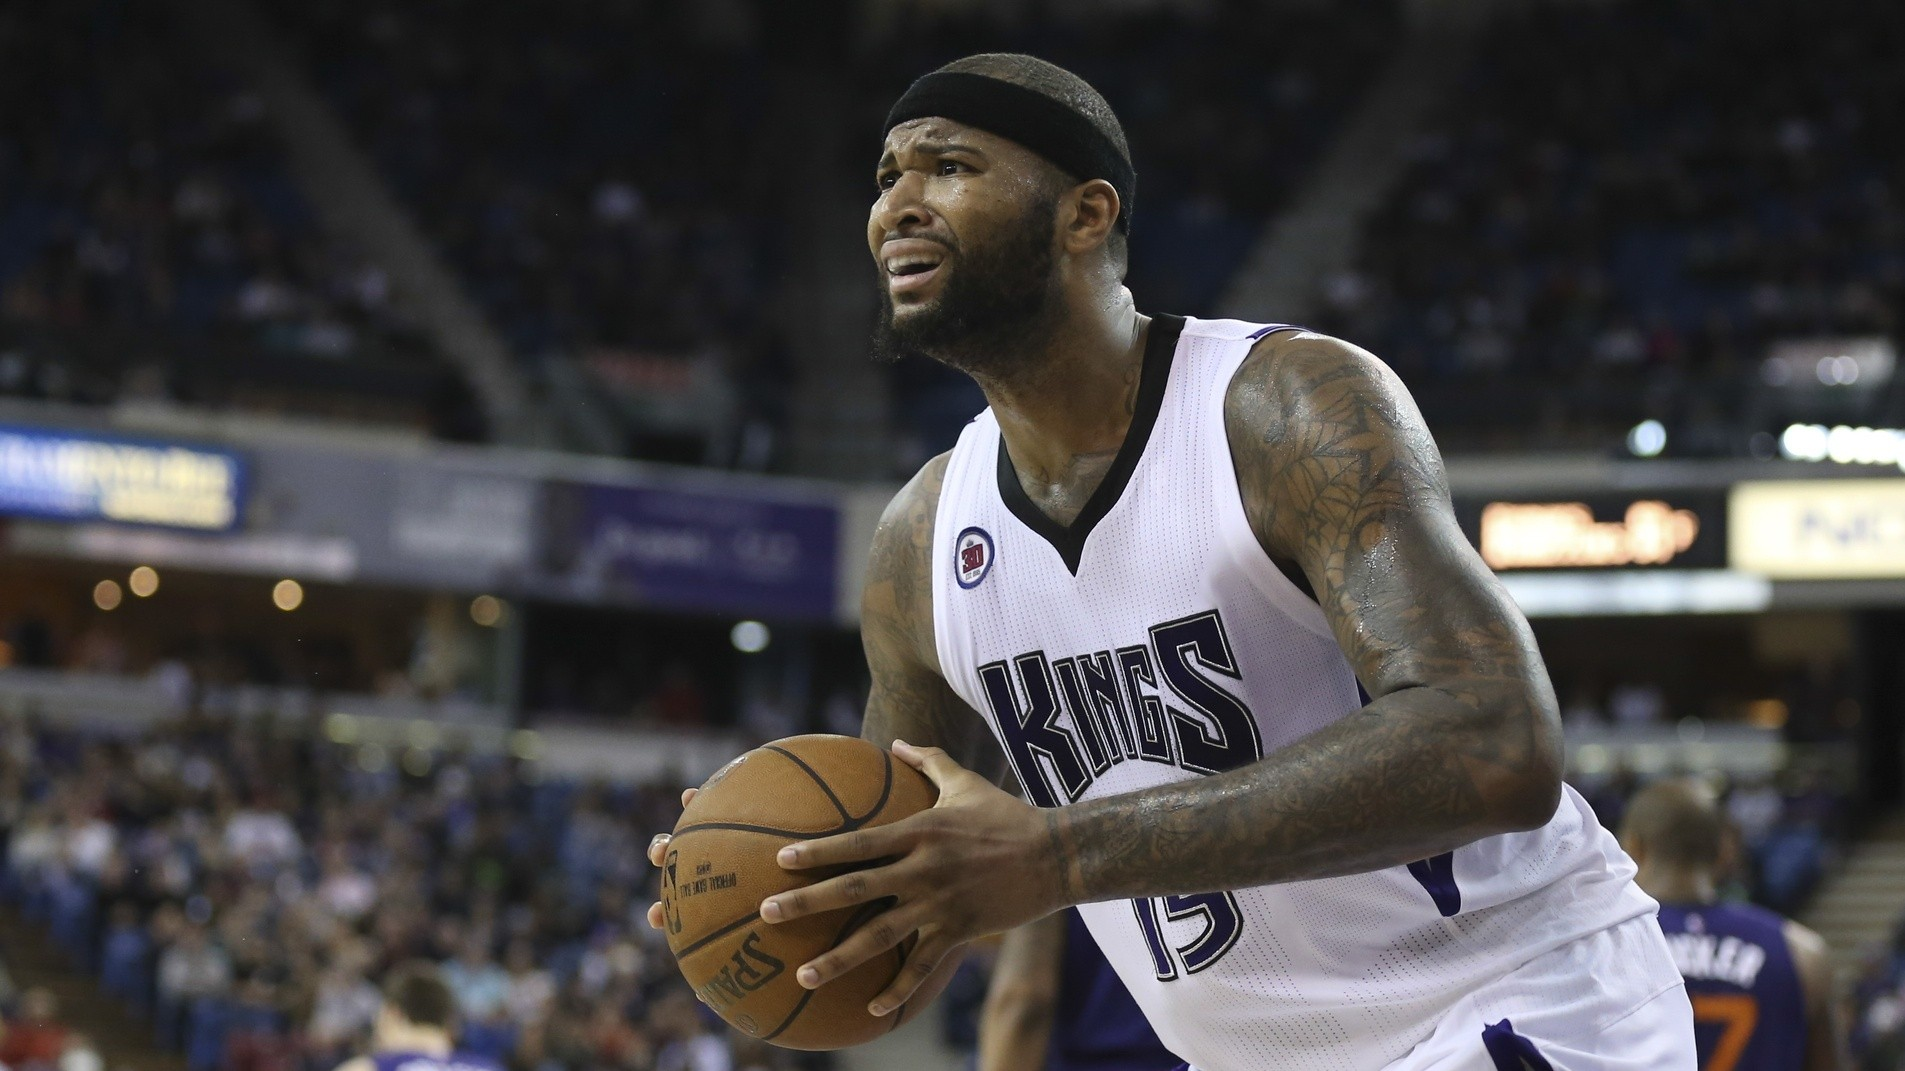 https://sports-images.vice.com/images/articles/meta/2015/02/09/demarcus-cousins-george-karl-and-the-crisis-of-the-sacramento-kings-1423496653.jpg?crop=1xw:0.84441489361702xh;center,top&resize=900:*&output-quality=75